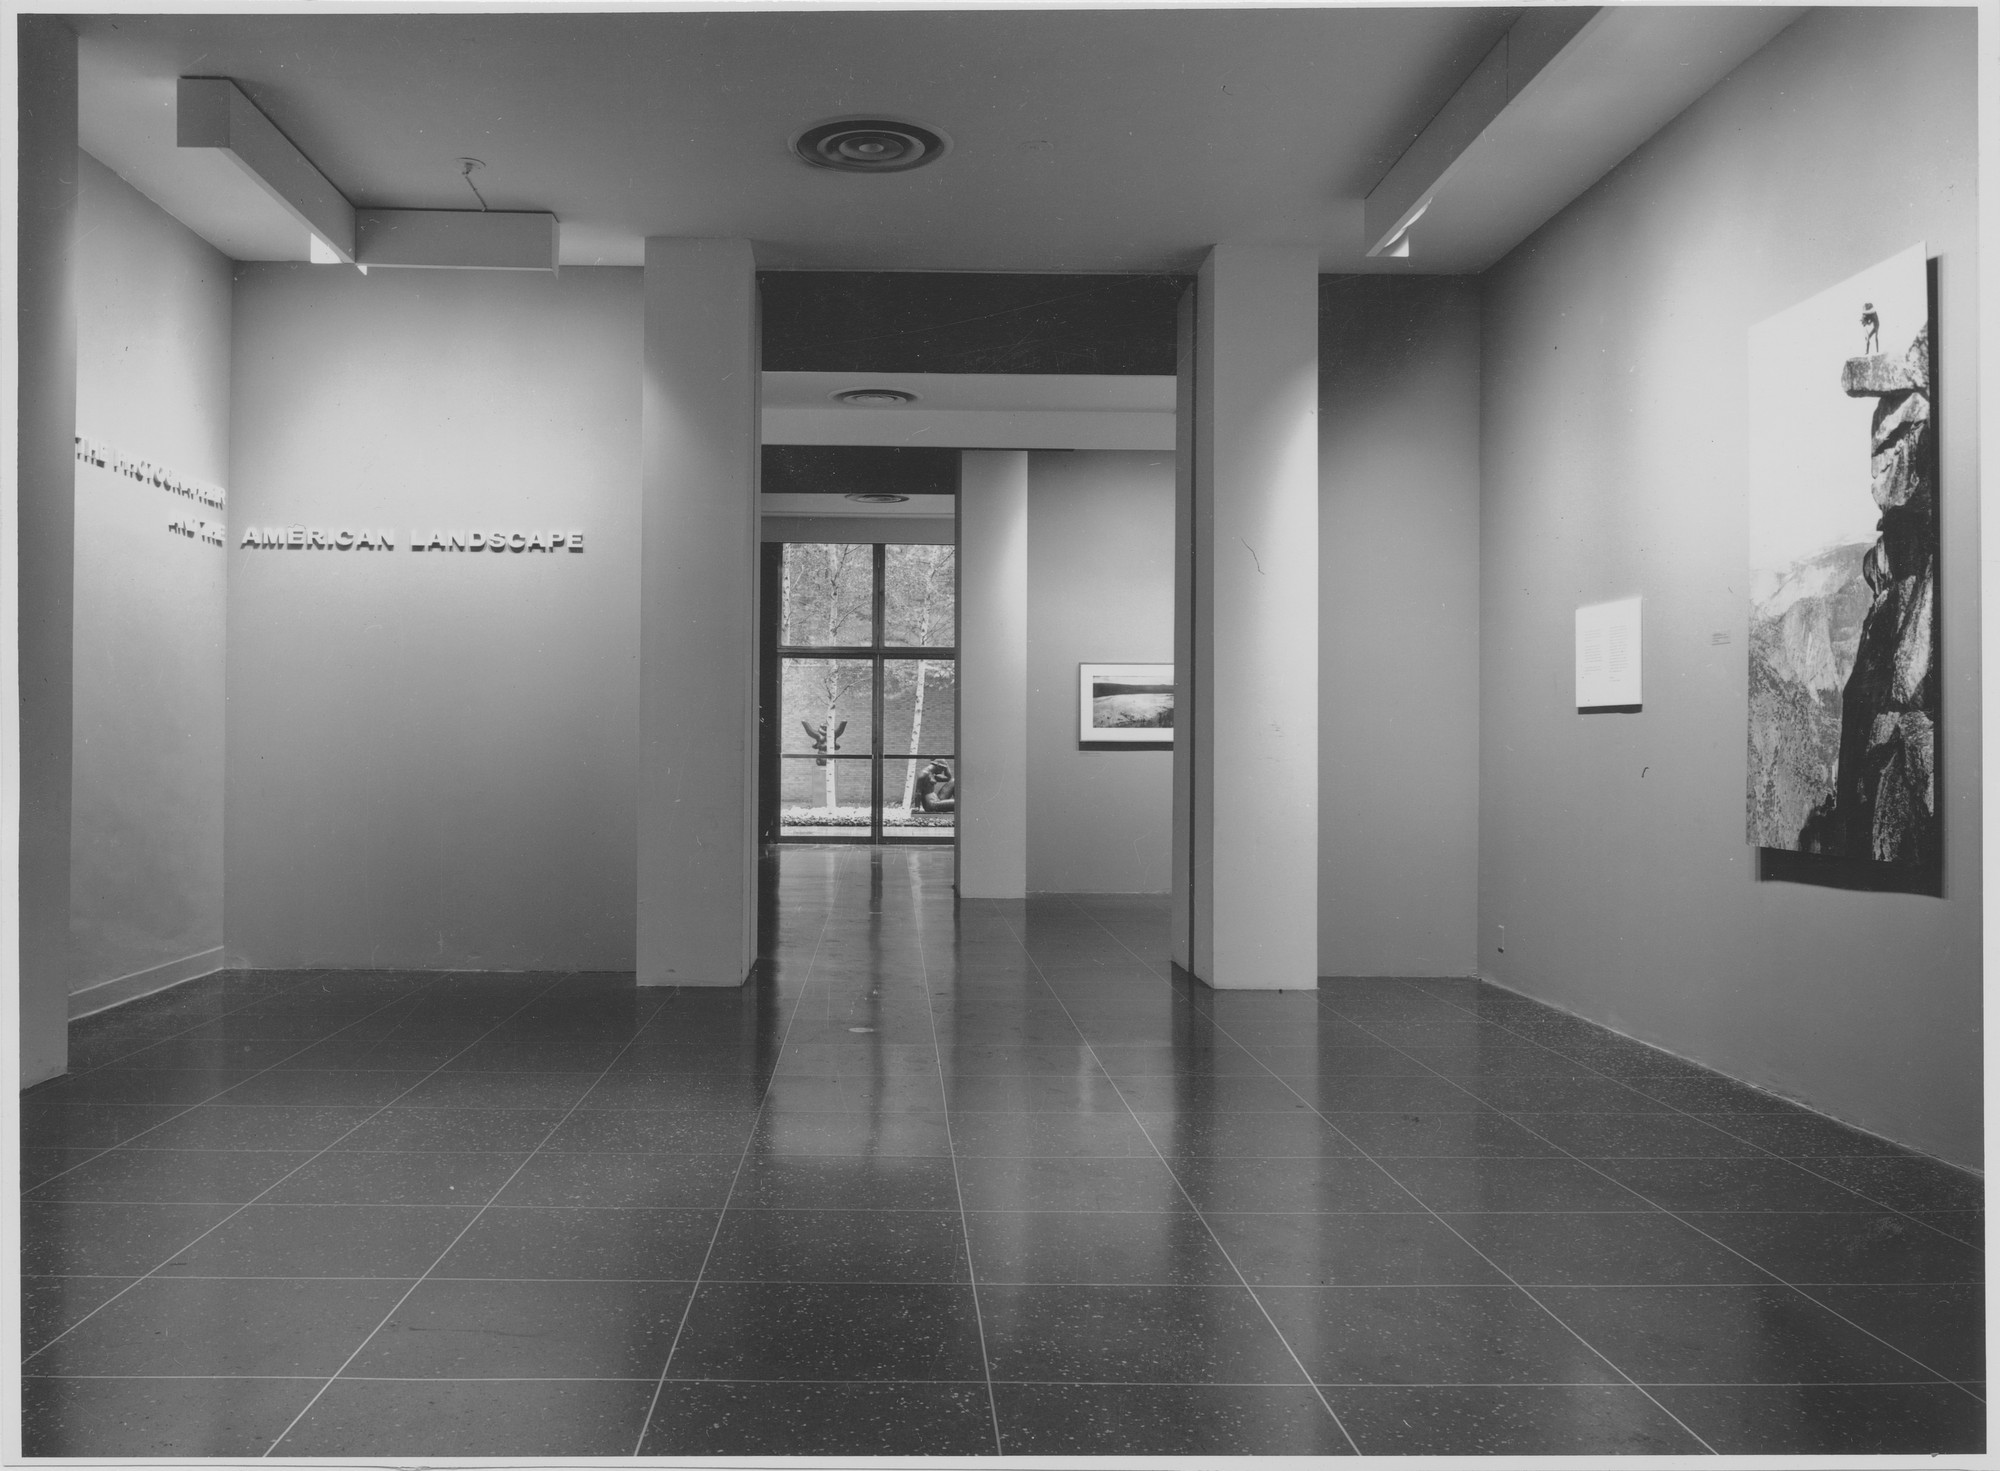 "Installation view of the exhibition, ""The Photographer and the American Landscape."" September 24, 1963–December 1, 1963. Photographic Archive. The Museum of Modern Art Archives, New York. IN728.1"